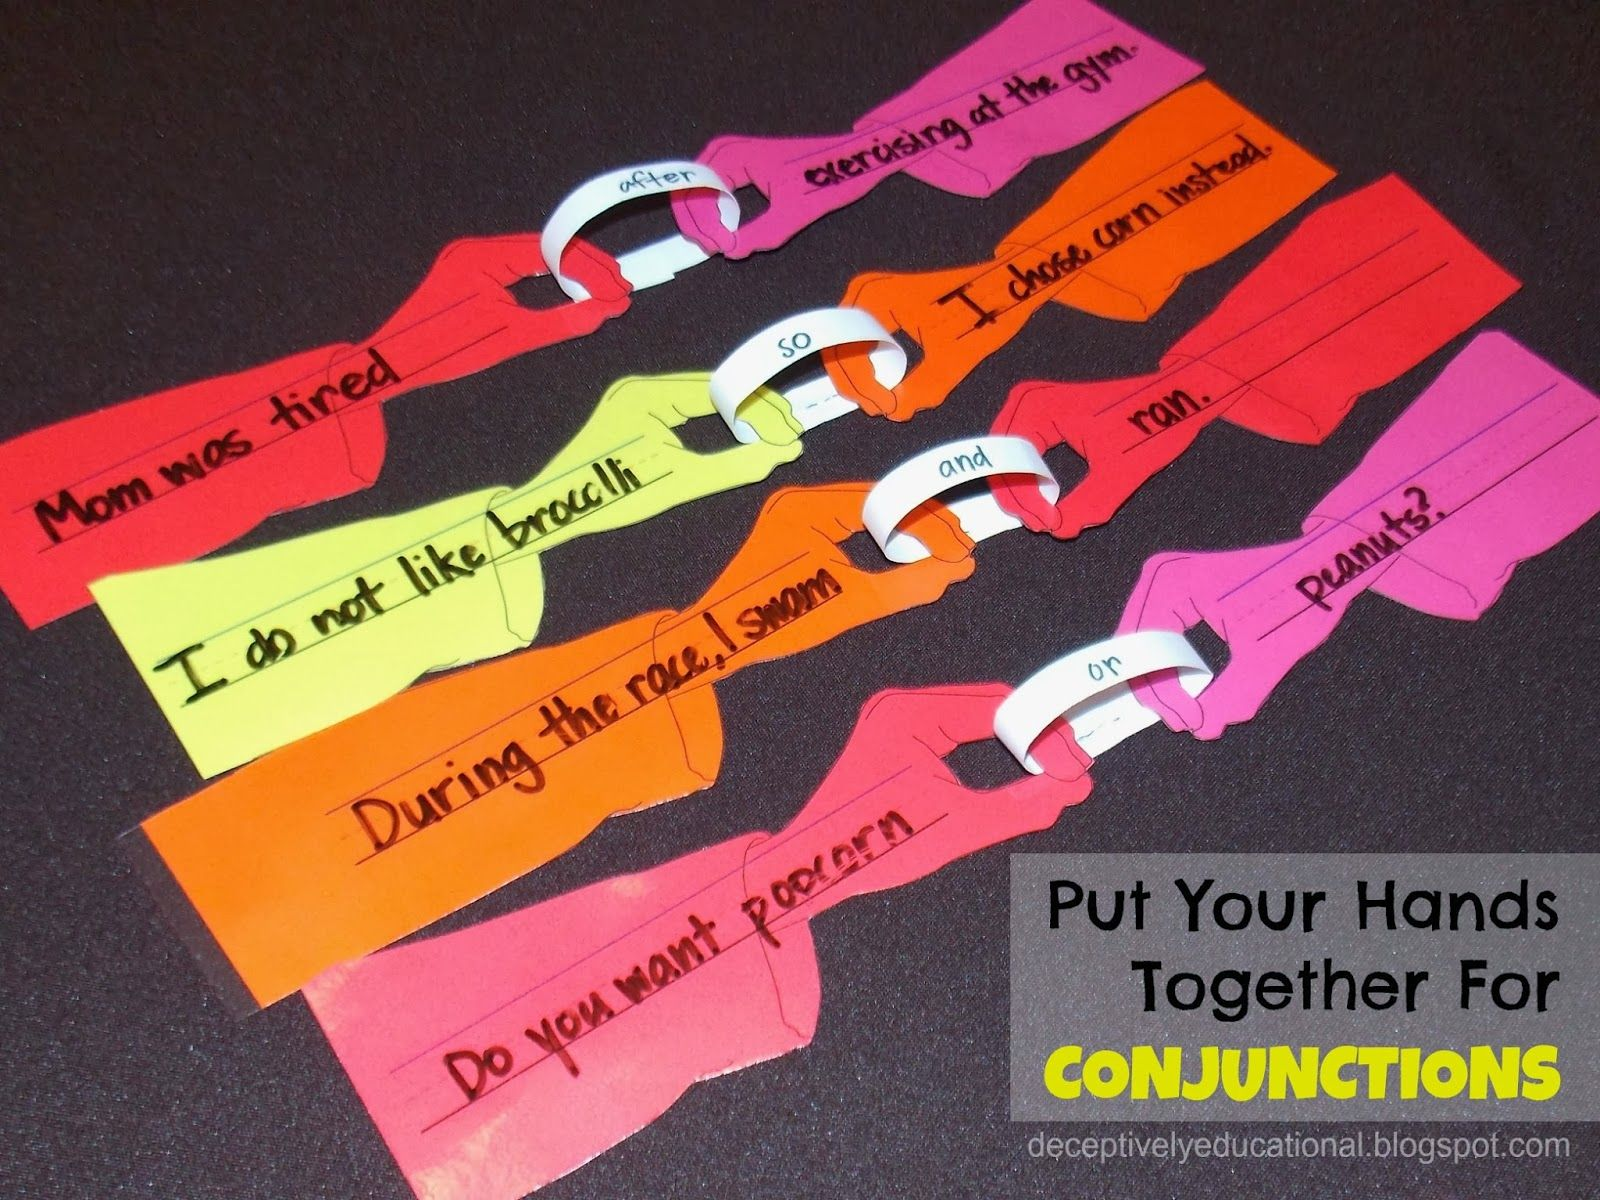 Put Your Hands Together For Conjunctions